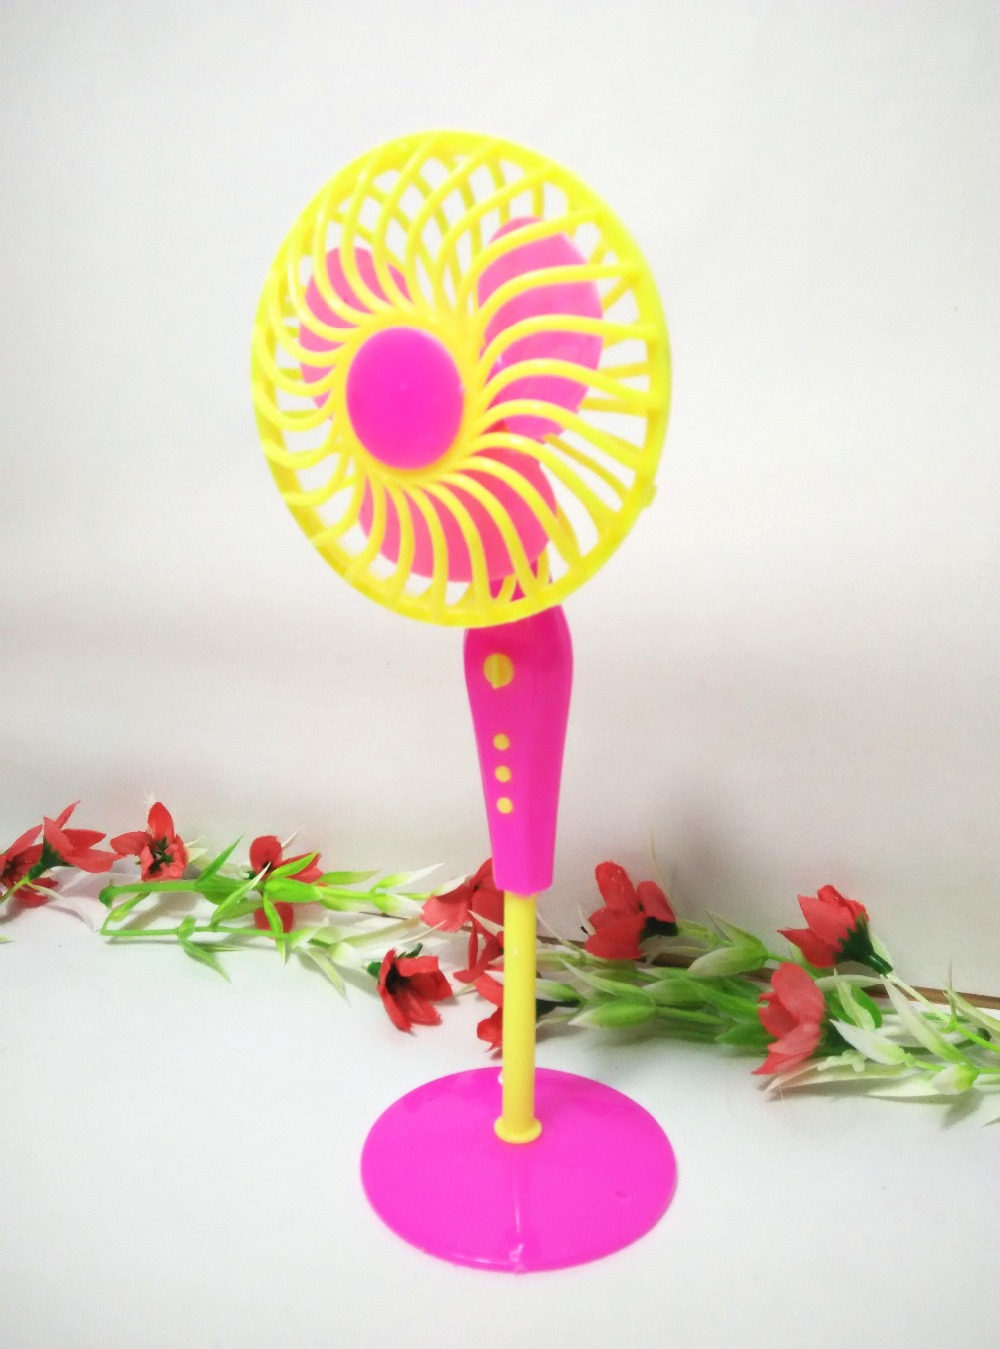 Child's play home toys  Plastic Electrical Fan Furnishings Mini Equipment for Barbie Doll Home Traditional Toys for Woman Free Transport